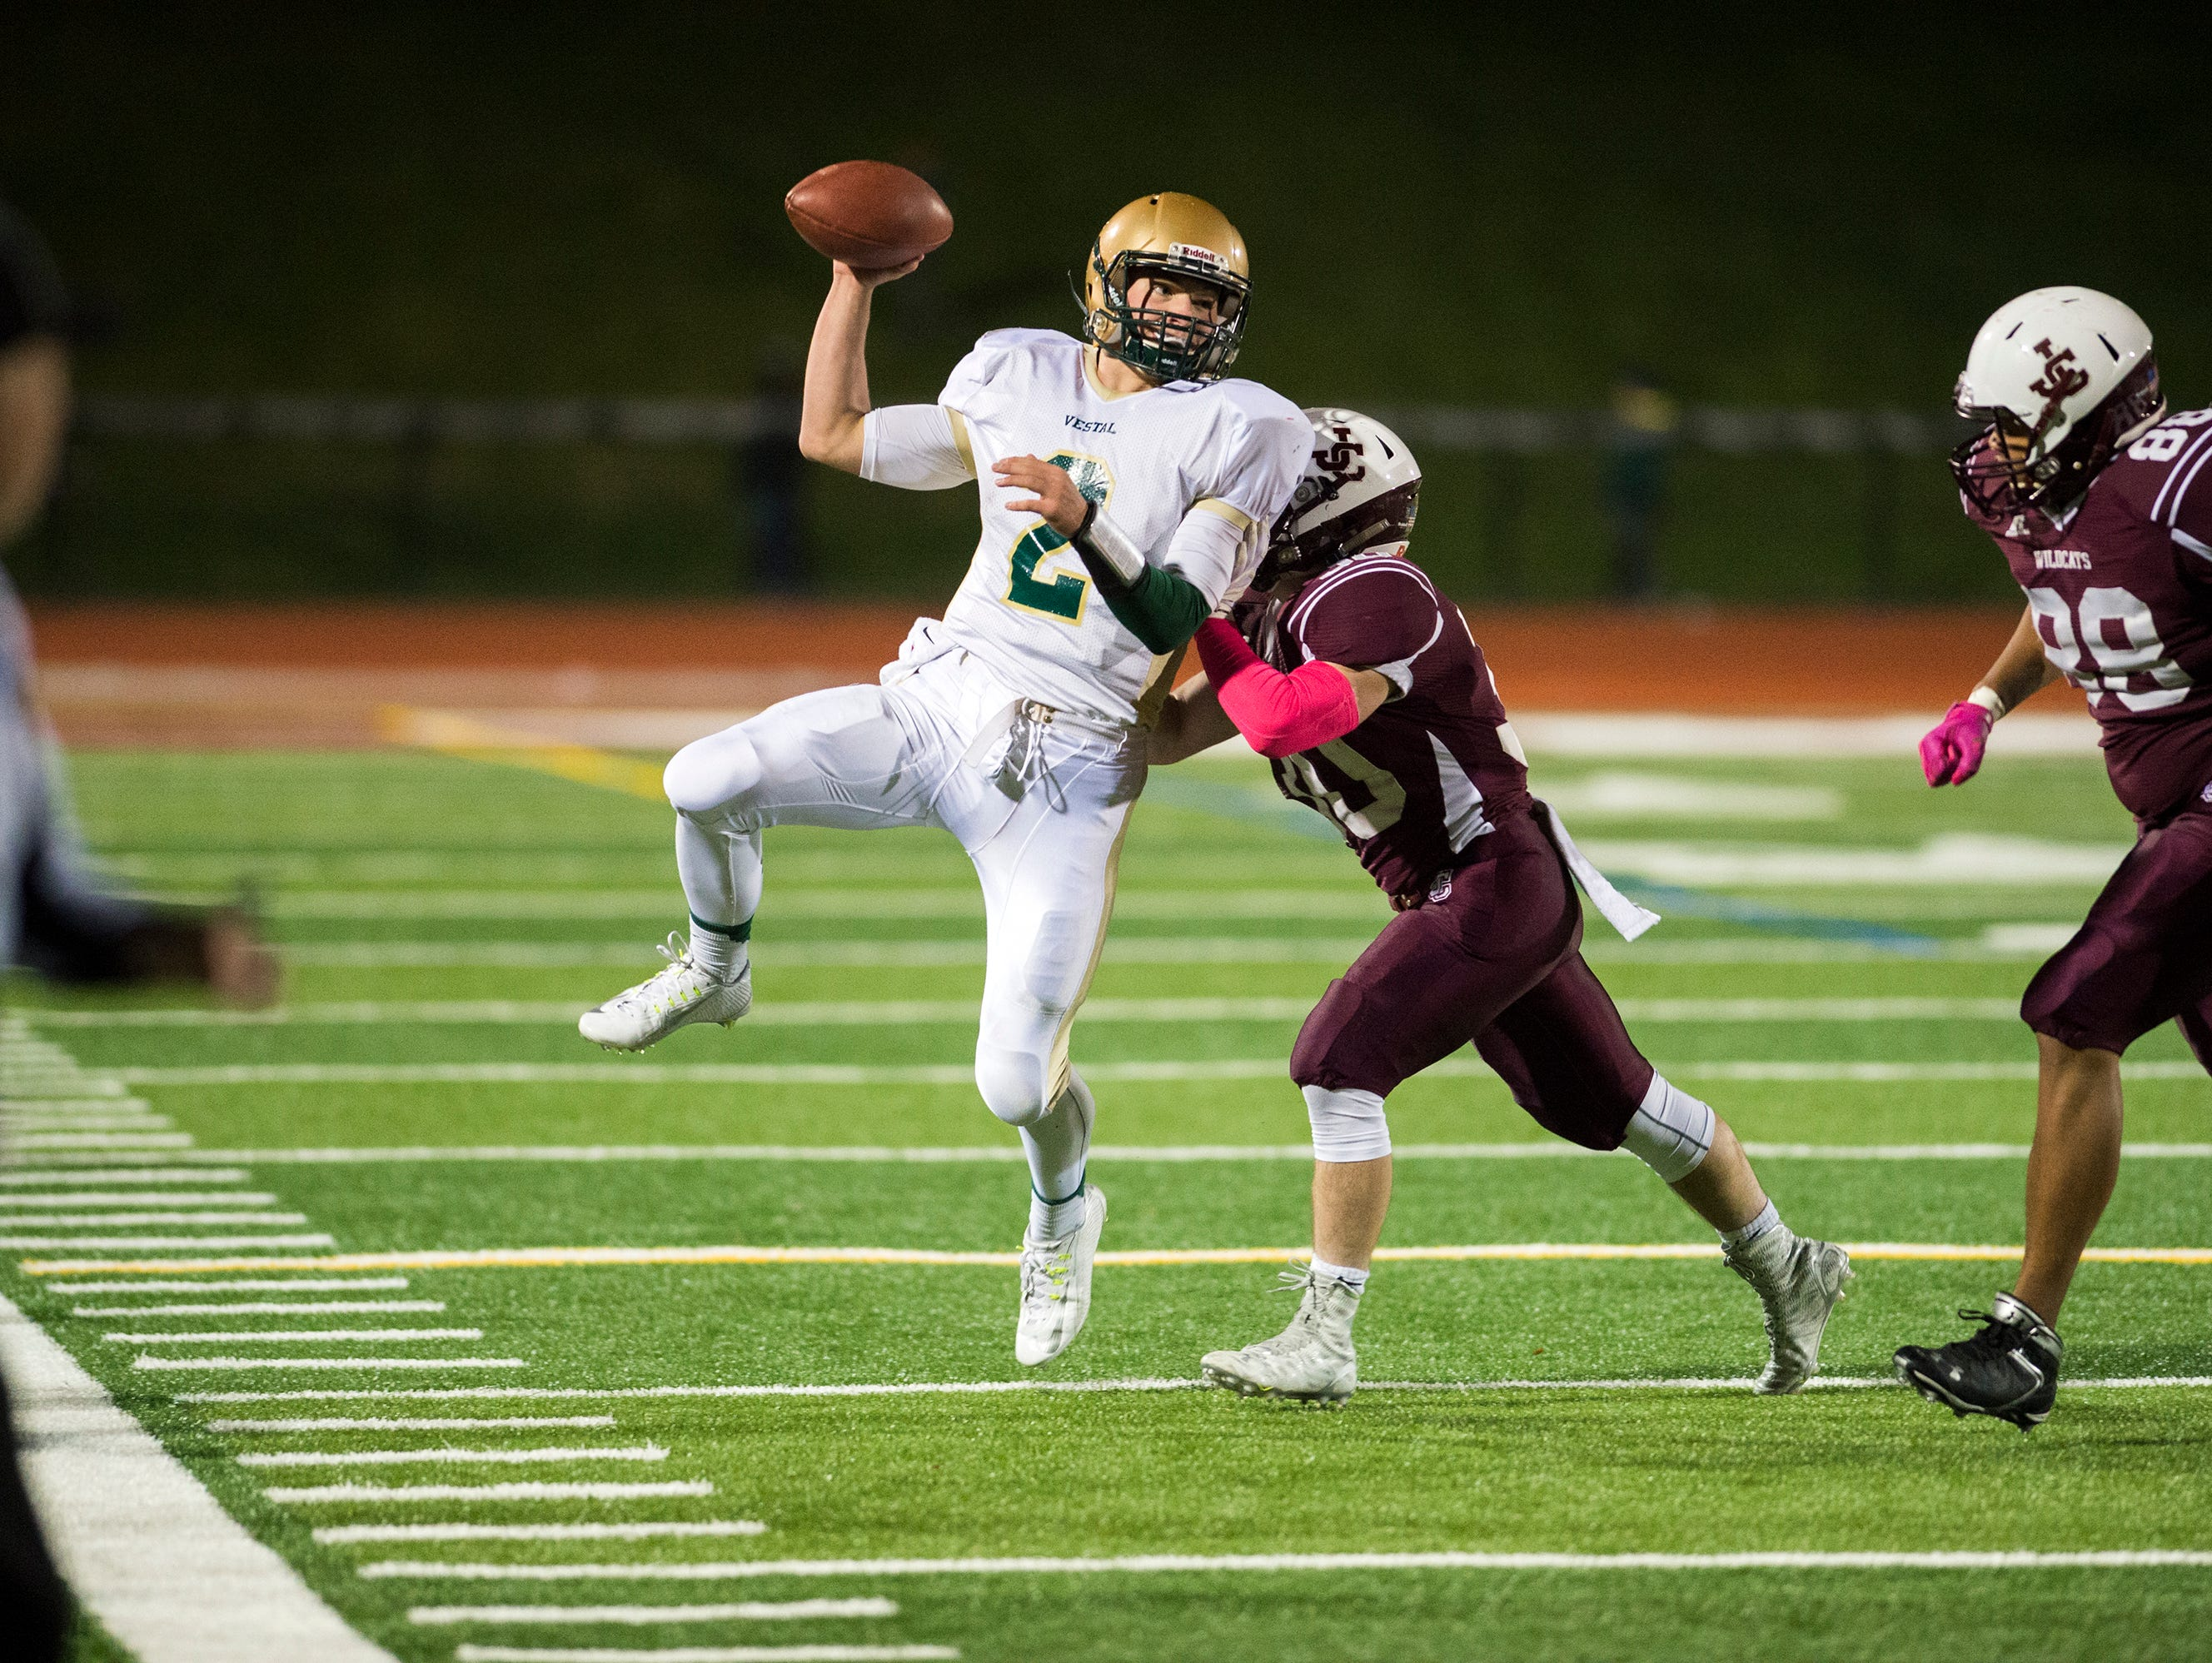 Vestal quarterback TJ Wegmann is throws as he is hit out of bounds by Johnson City defender Alex Sprague-Getsy during the second quarter of JC's 29-6 win in the Section 4 Class A semifinal playoff game on Friday.